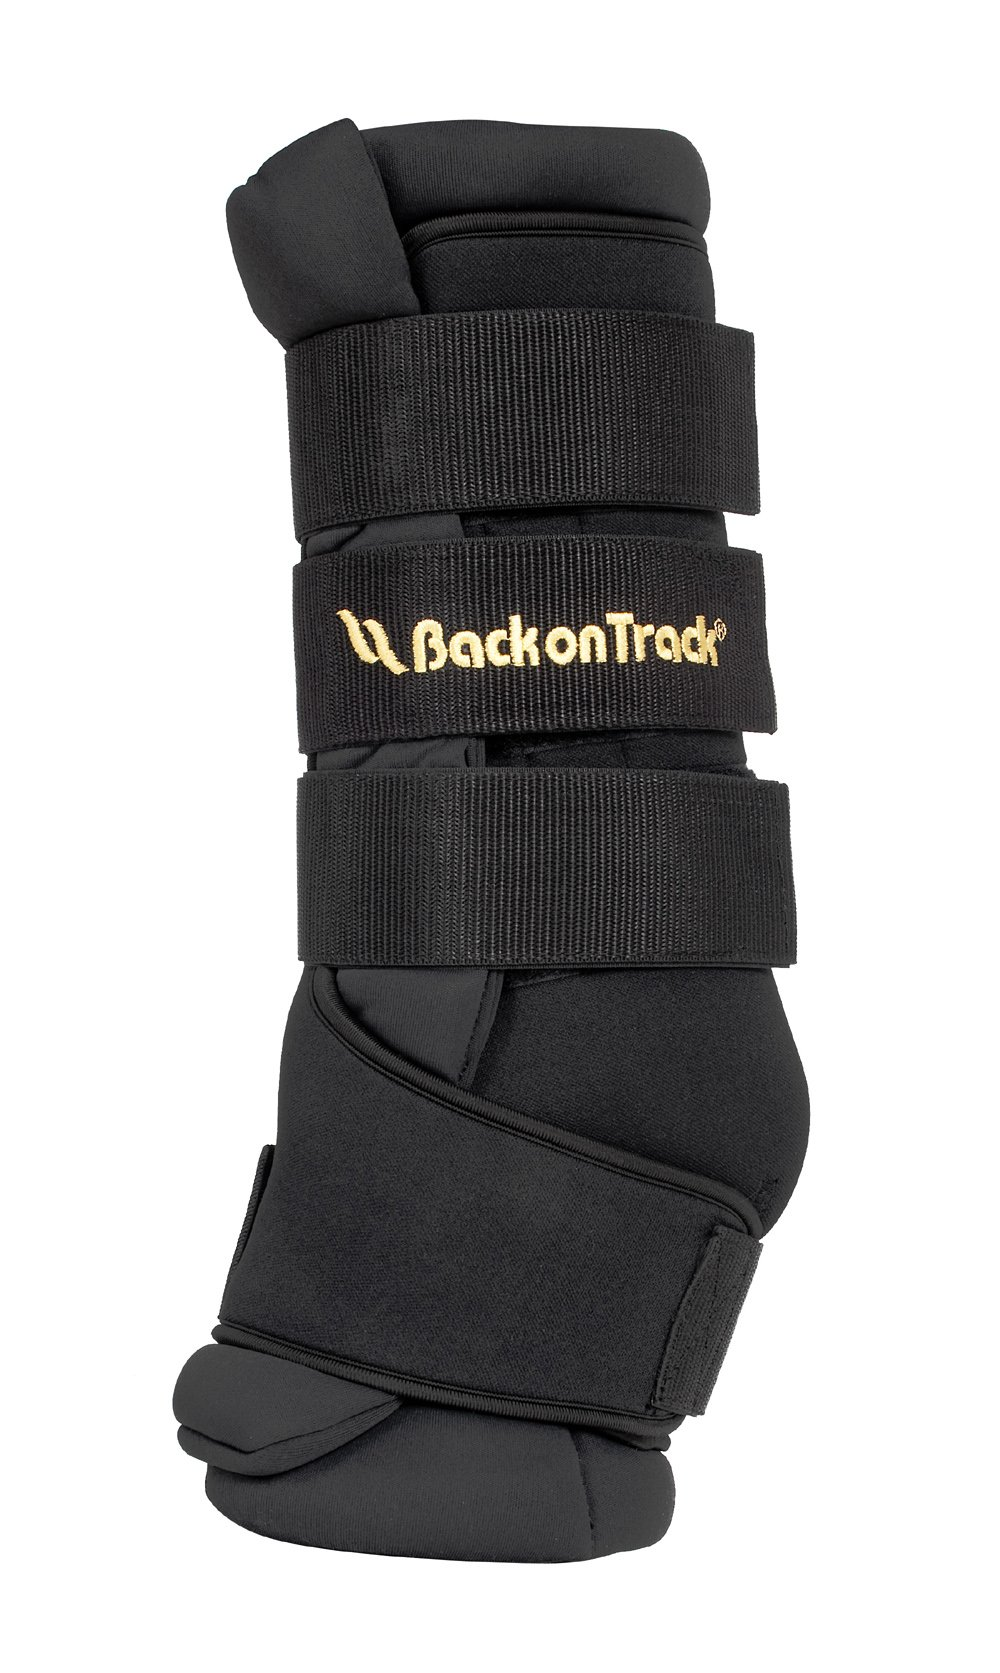 Back on Track Therapeutic 2-Piece Welltex Horse Quick Wrap, 16-Inch, Large by Backbone